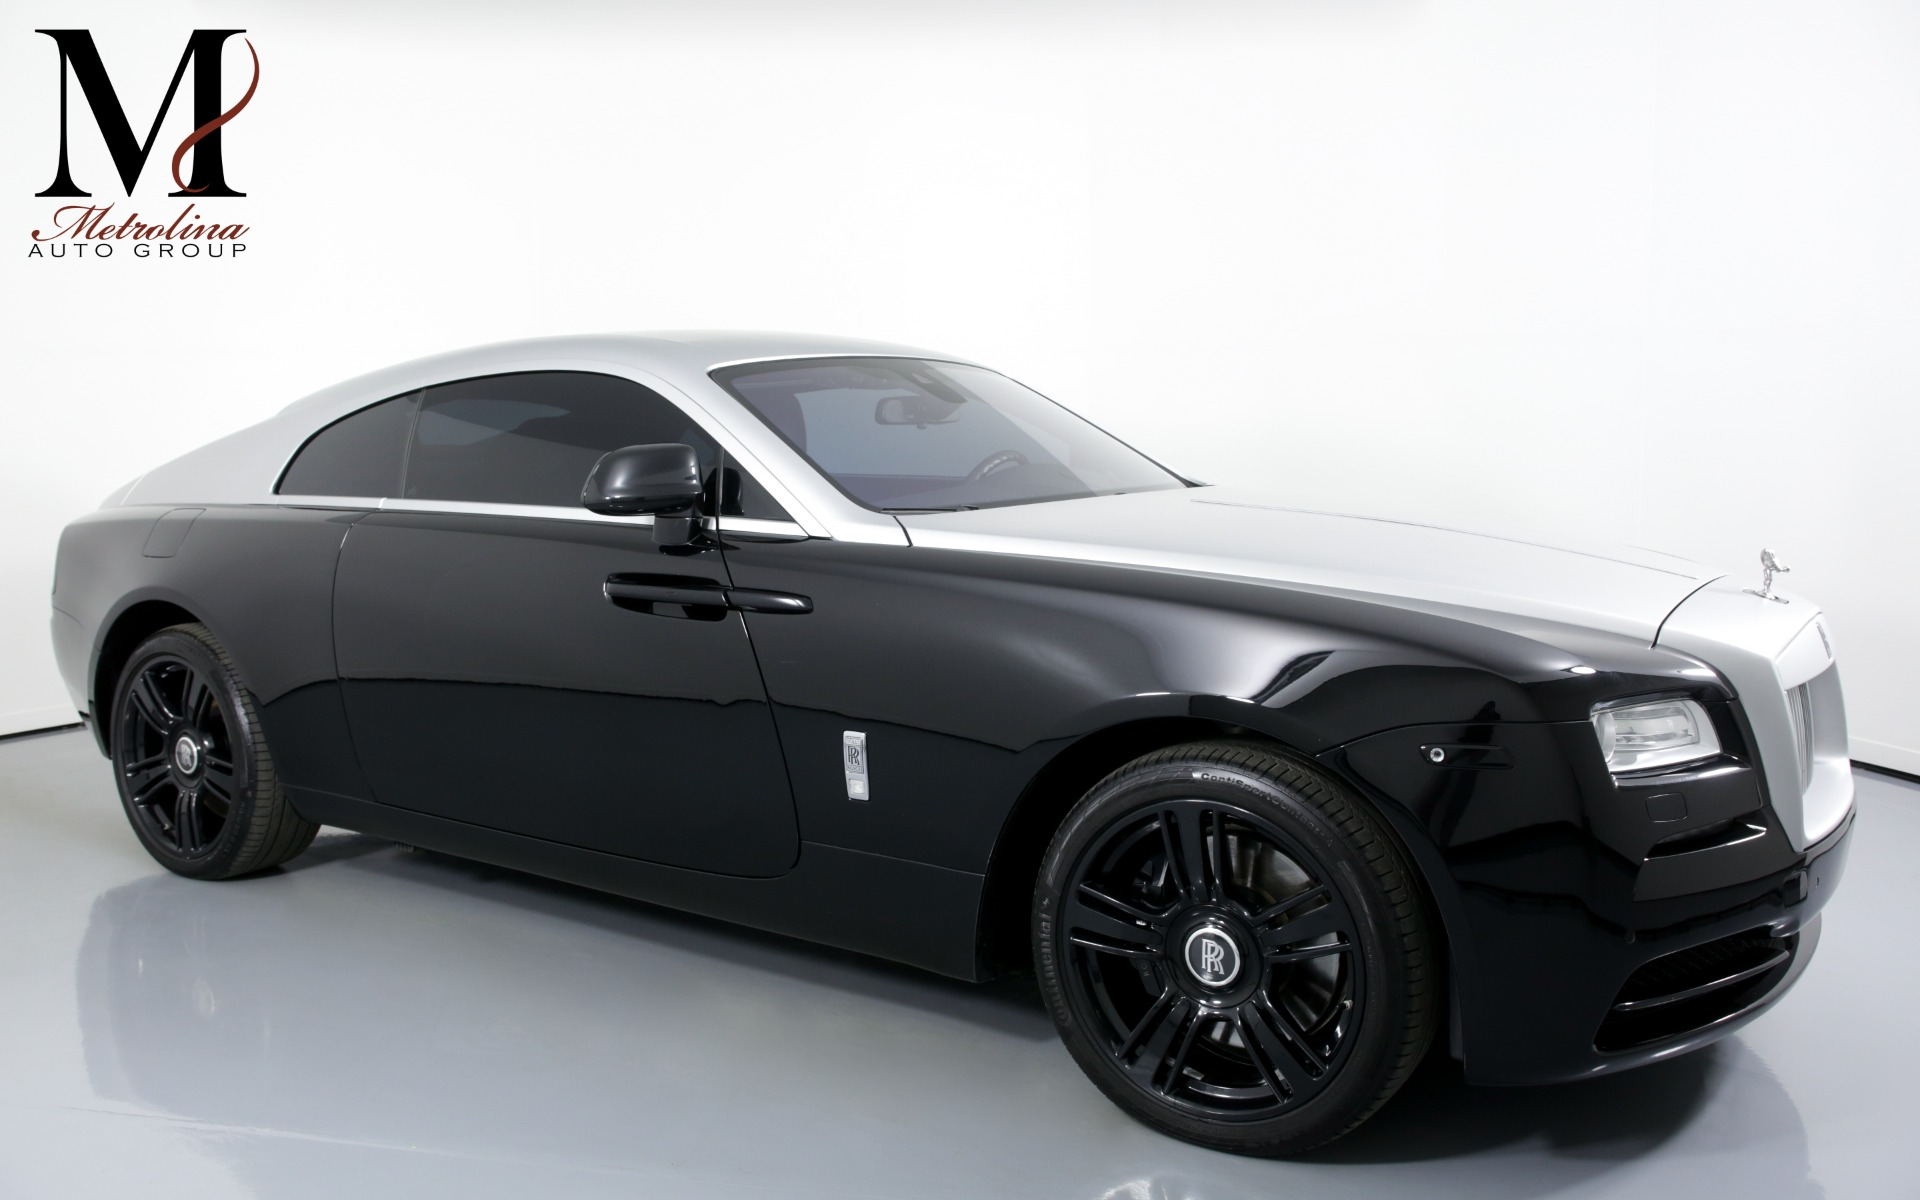 Used 2014 Rolls-Royce Wraith for sale $149,996 at Metrolina Auto Group in Charlotte NC 28217 - 1